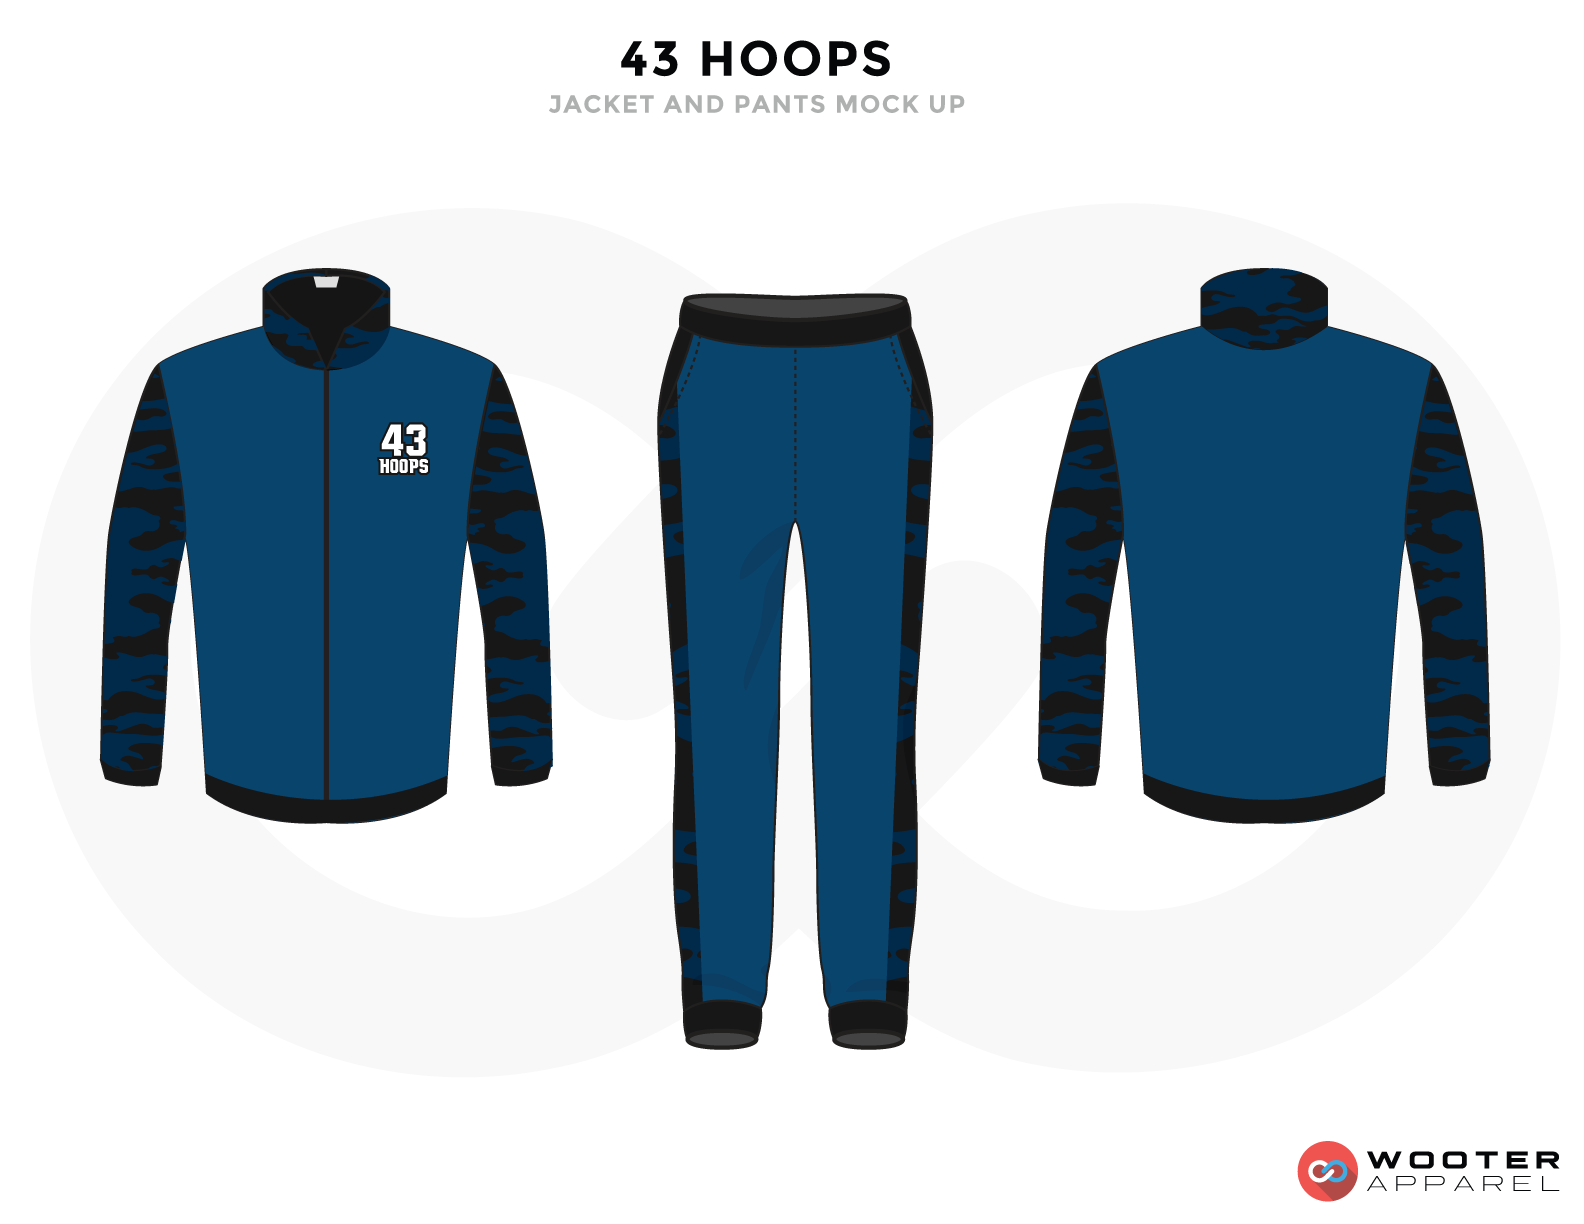 43 HOOPS Blue White and Black Baseball Uniforms, Jacket Jersey and Pants